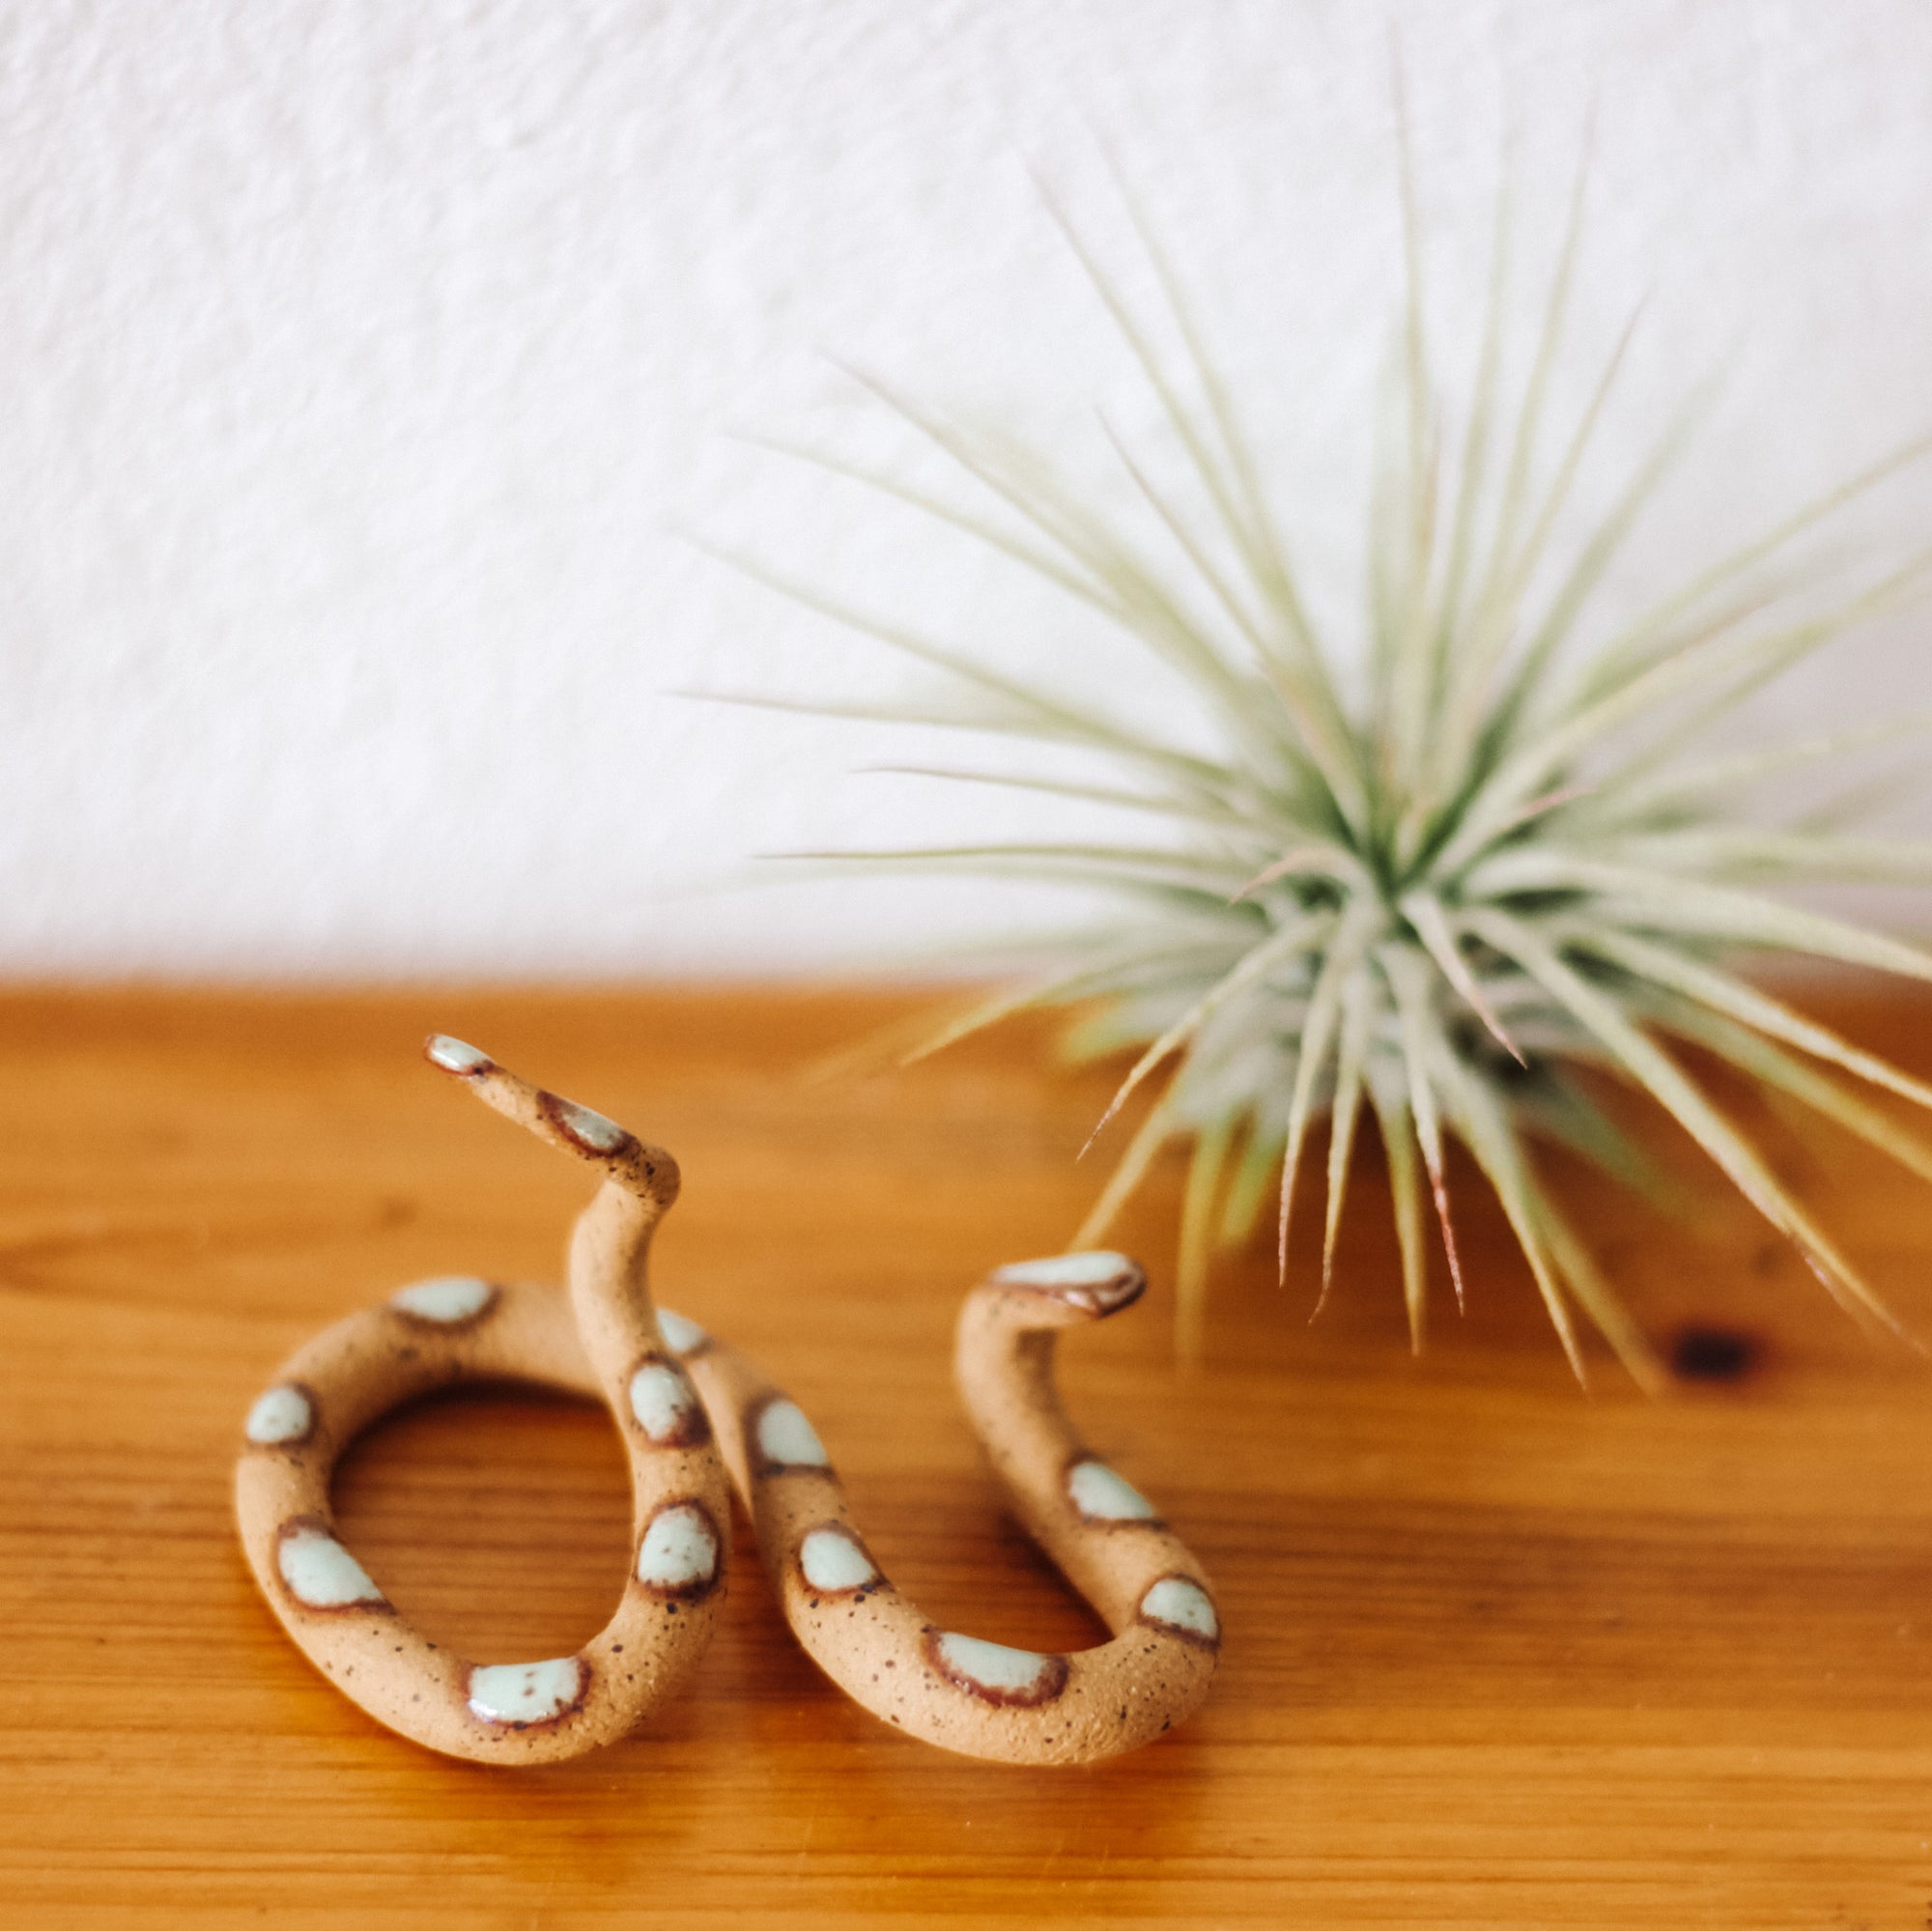 Carter and Rose, Small Ceramic Snakes